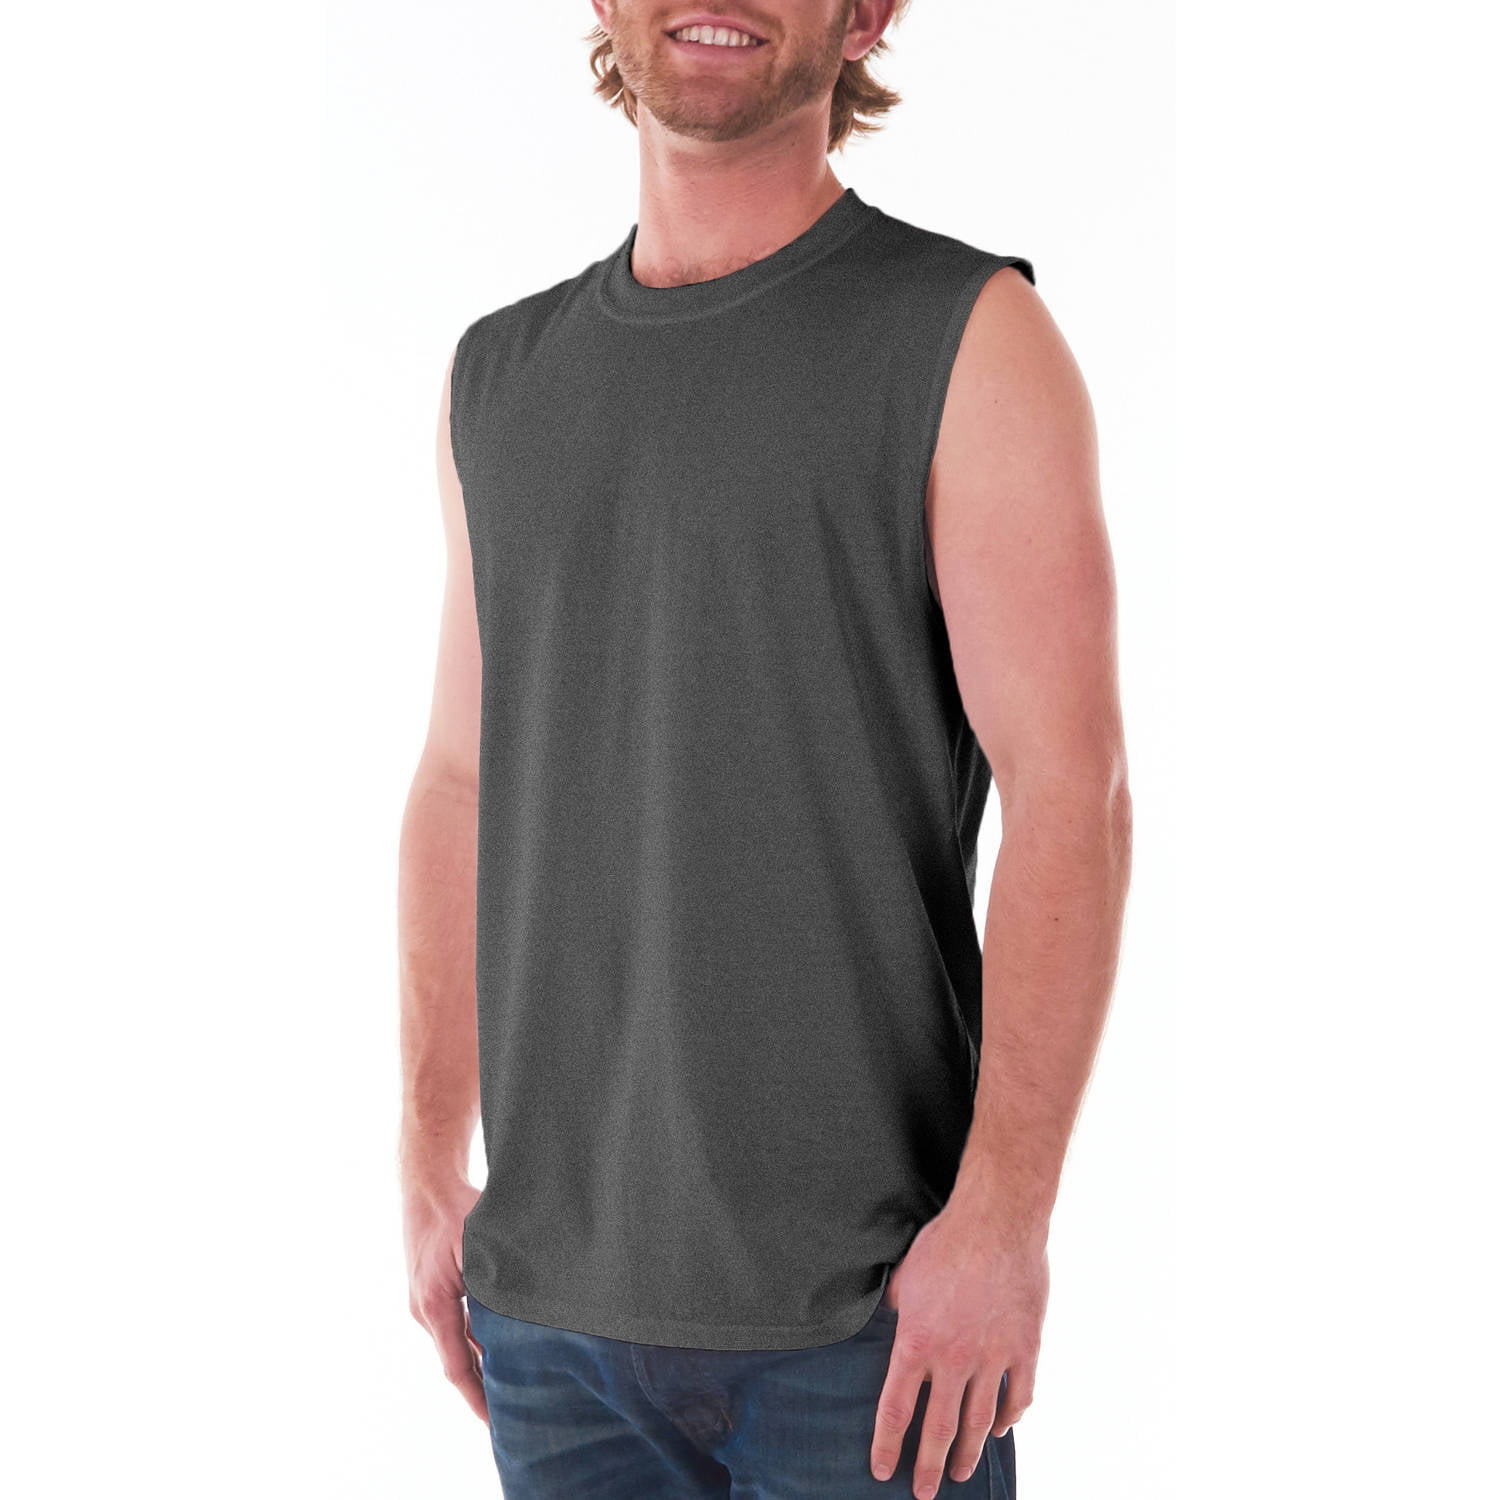 mens sleeveless